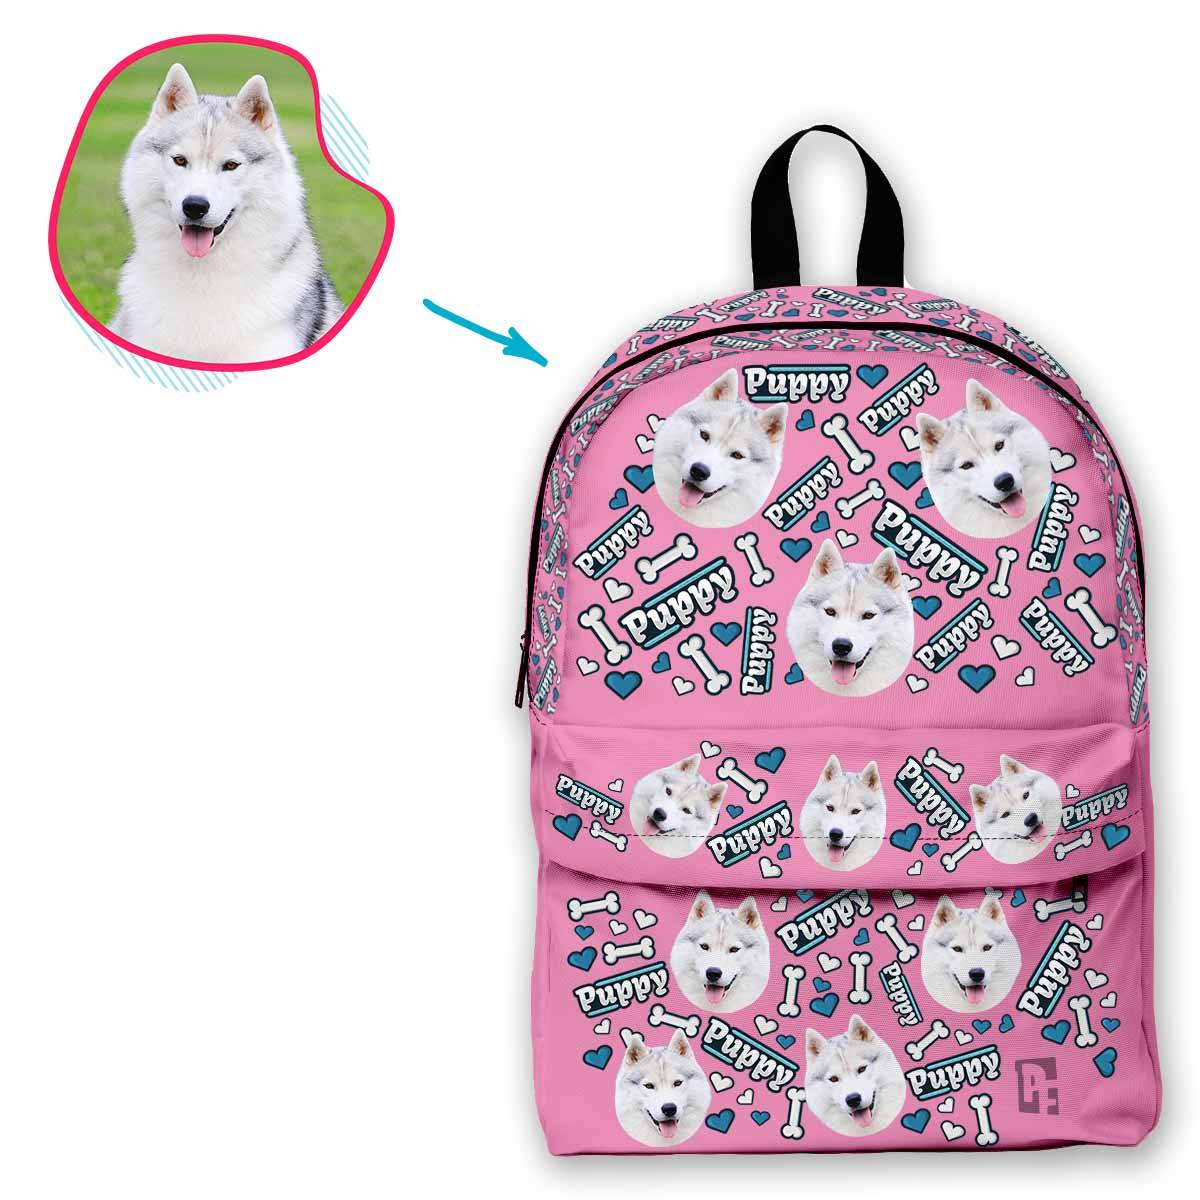 pink Puppy classic backpack personalized with photo of face printed on it